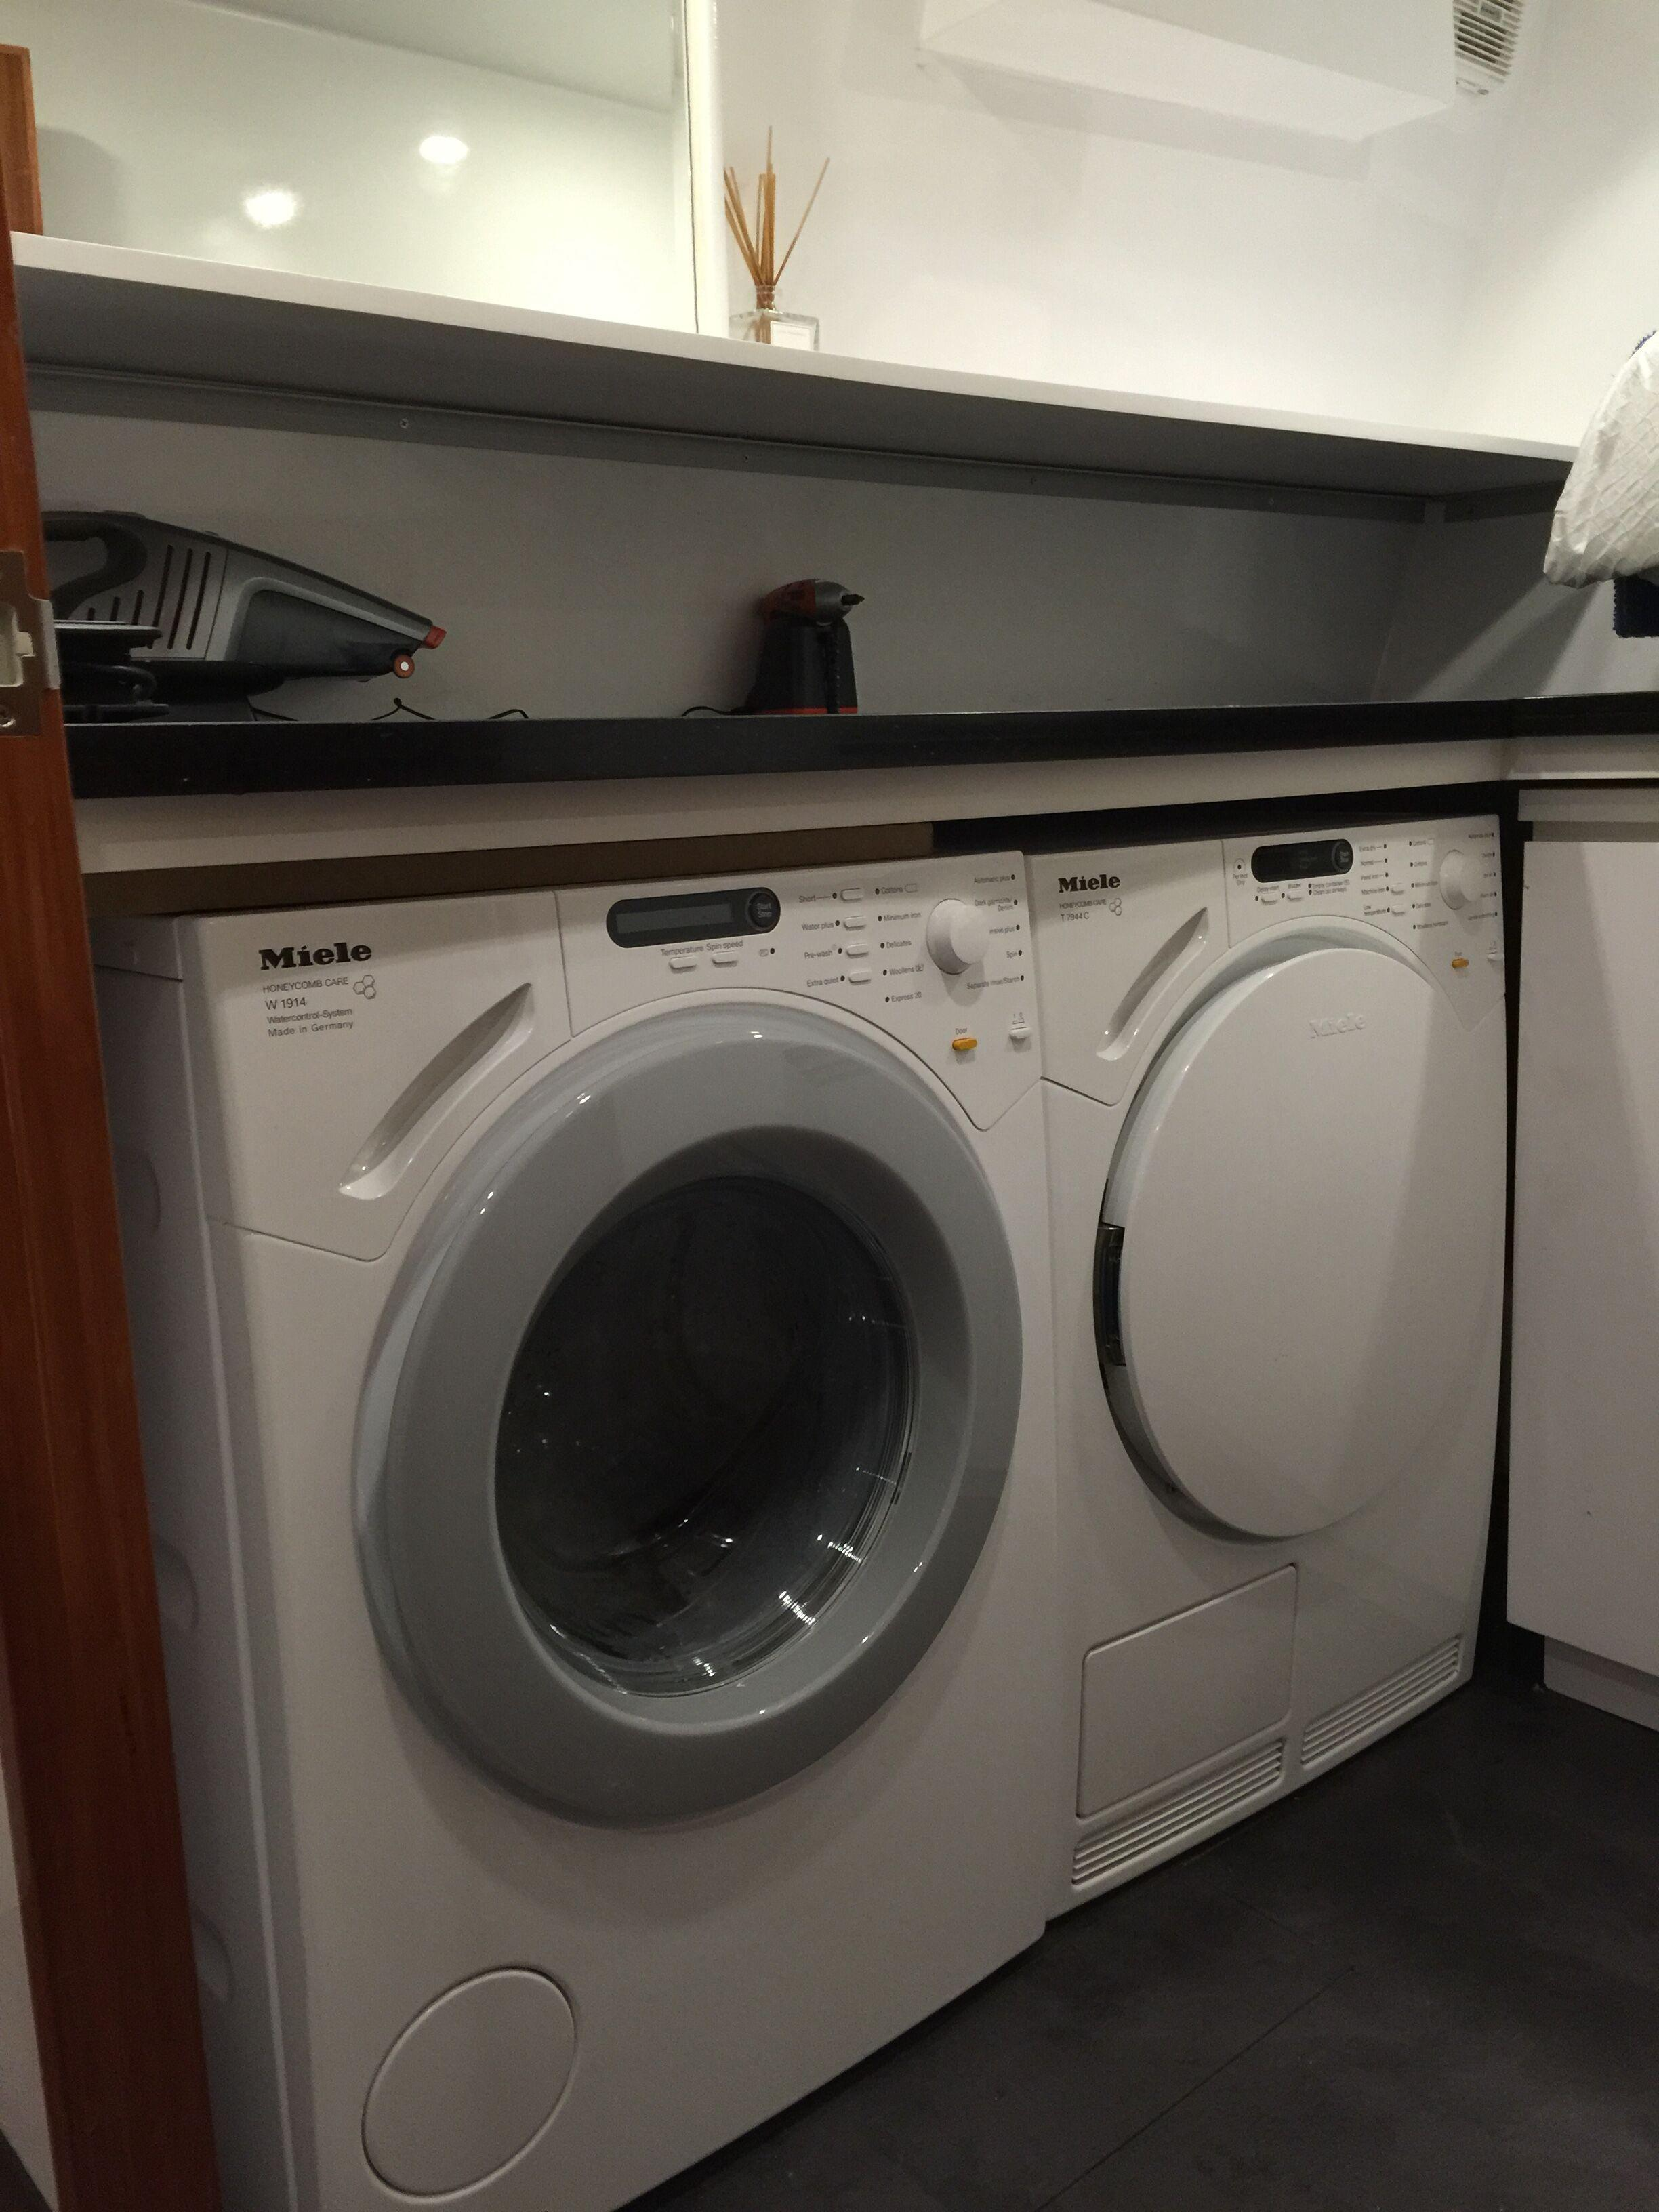 New Build 82 Washer/dryer